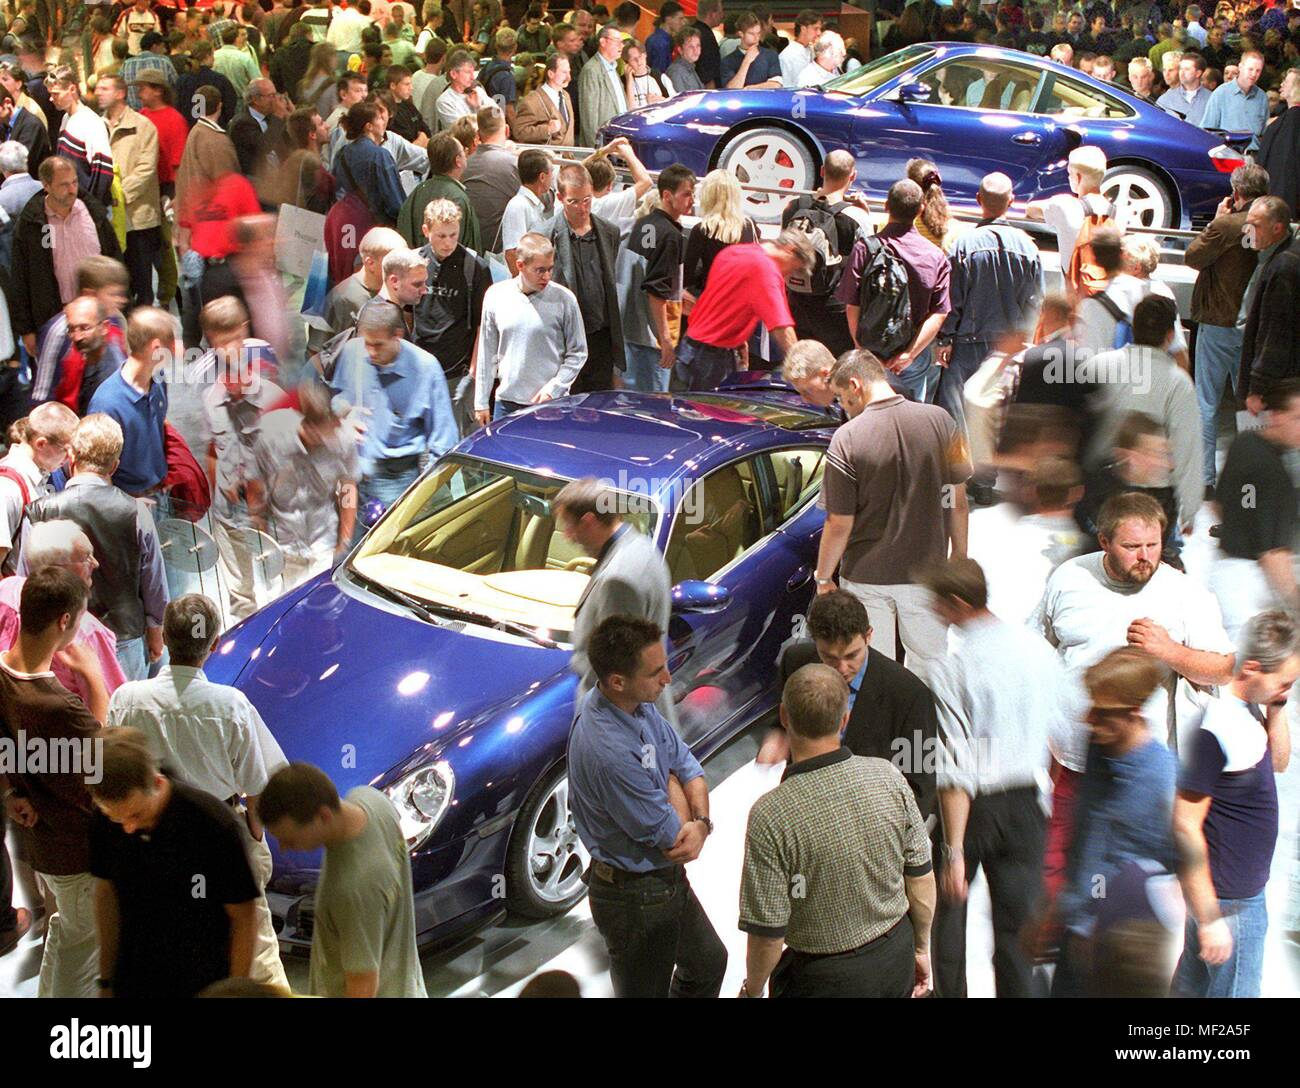 On 18.9.1999 visitors came to the Porsche booth at the International Motor Show (IAA) in Frankfurt on the first day of the public day. Two days after the official launch, the IAA is now open to the general public. The world's most important car show is expected to attract nearly 900,000 visitors to the fairgrounds by 26 September. | usage worldwide - Stock Image